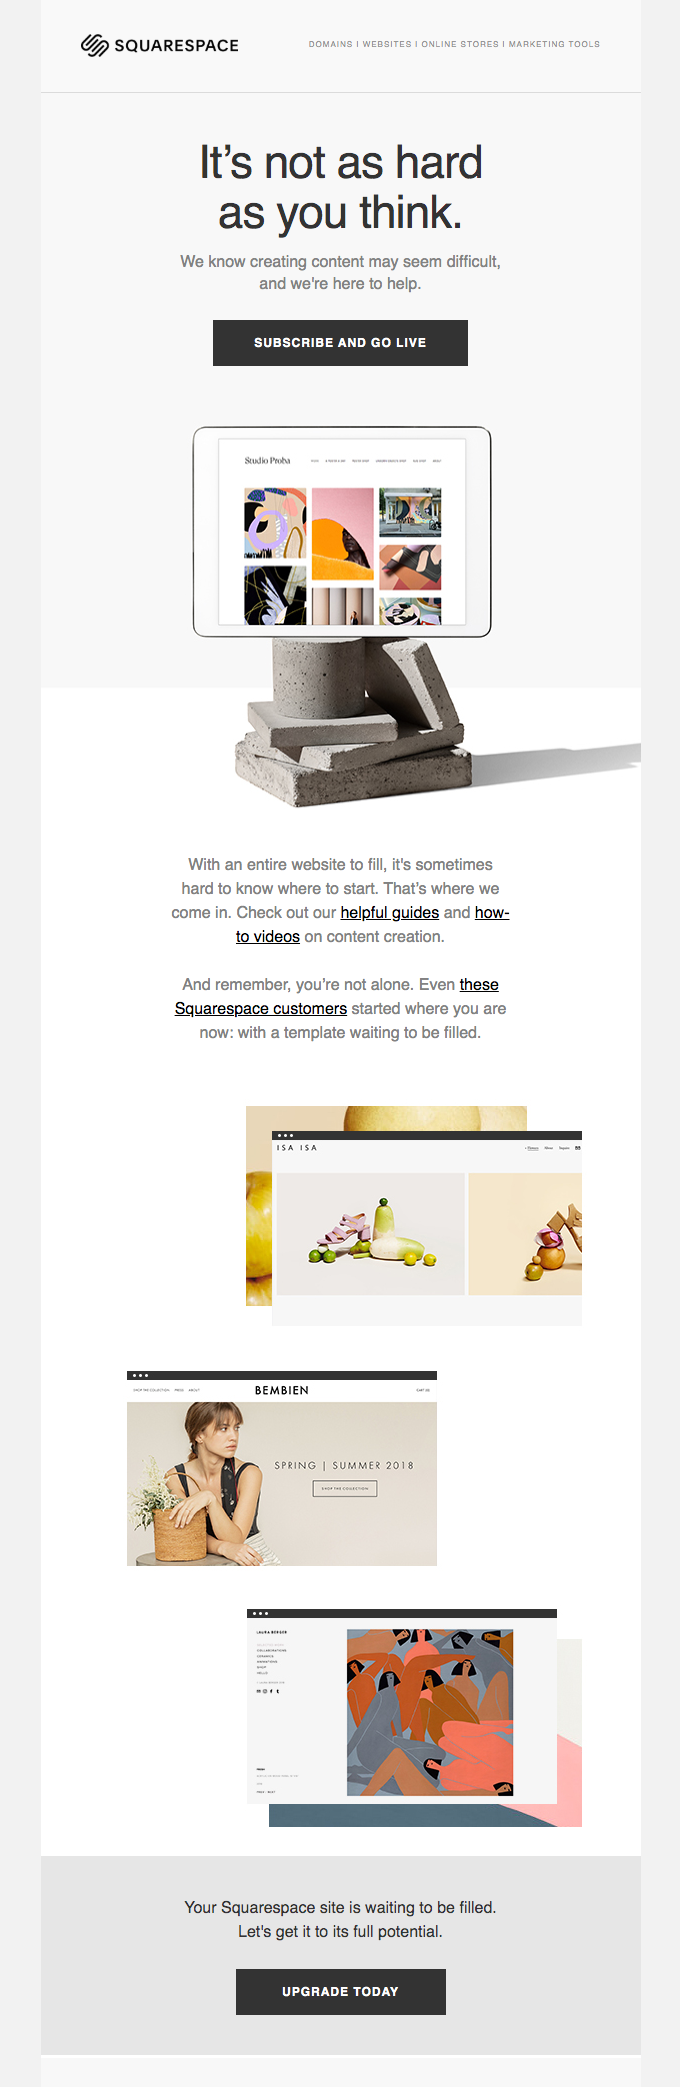 squarespace engagement email example